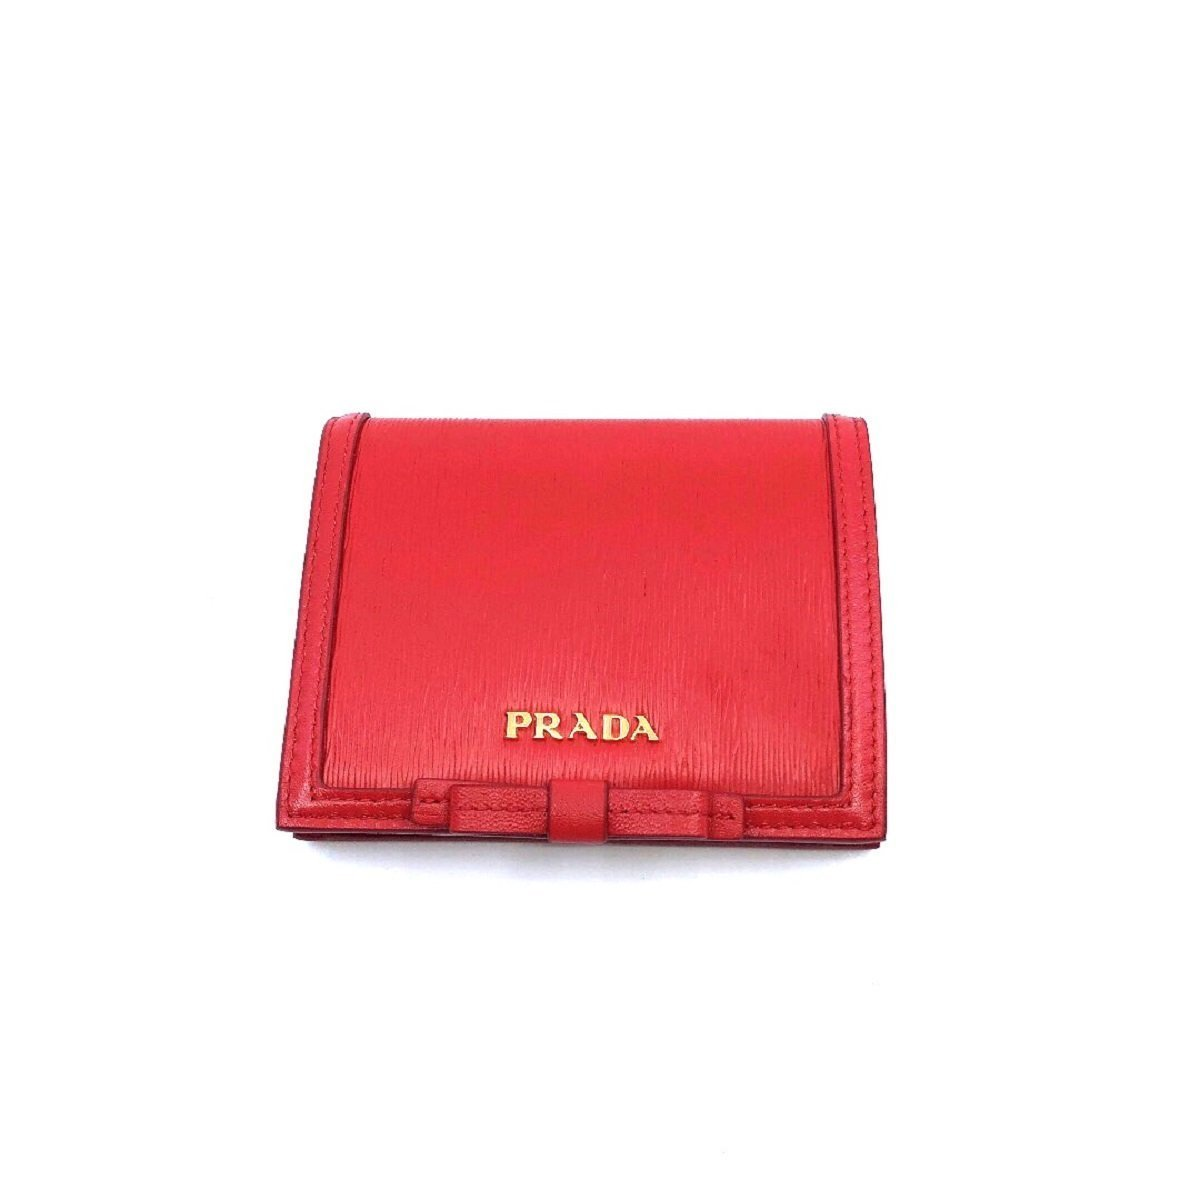 Prada Portafoglio Verticale Fuxia Red Leather Vitello Move Flap Bow Wallet 1MV204